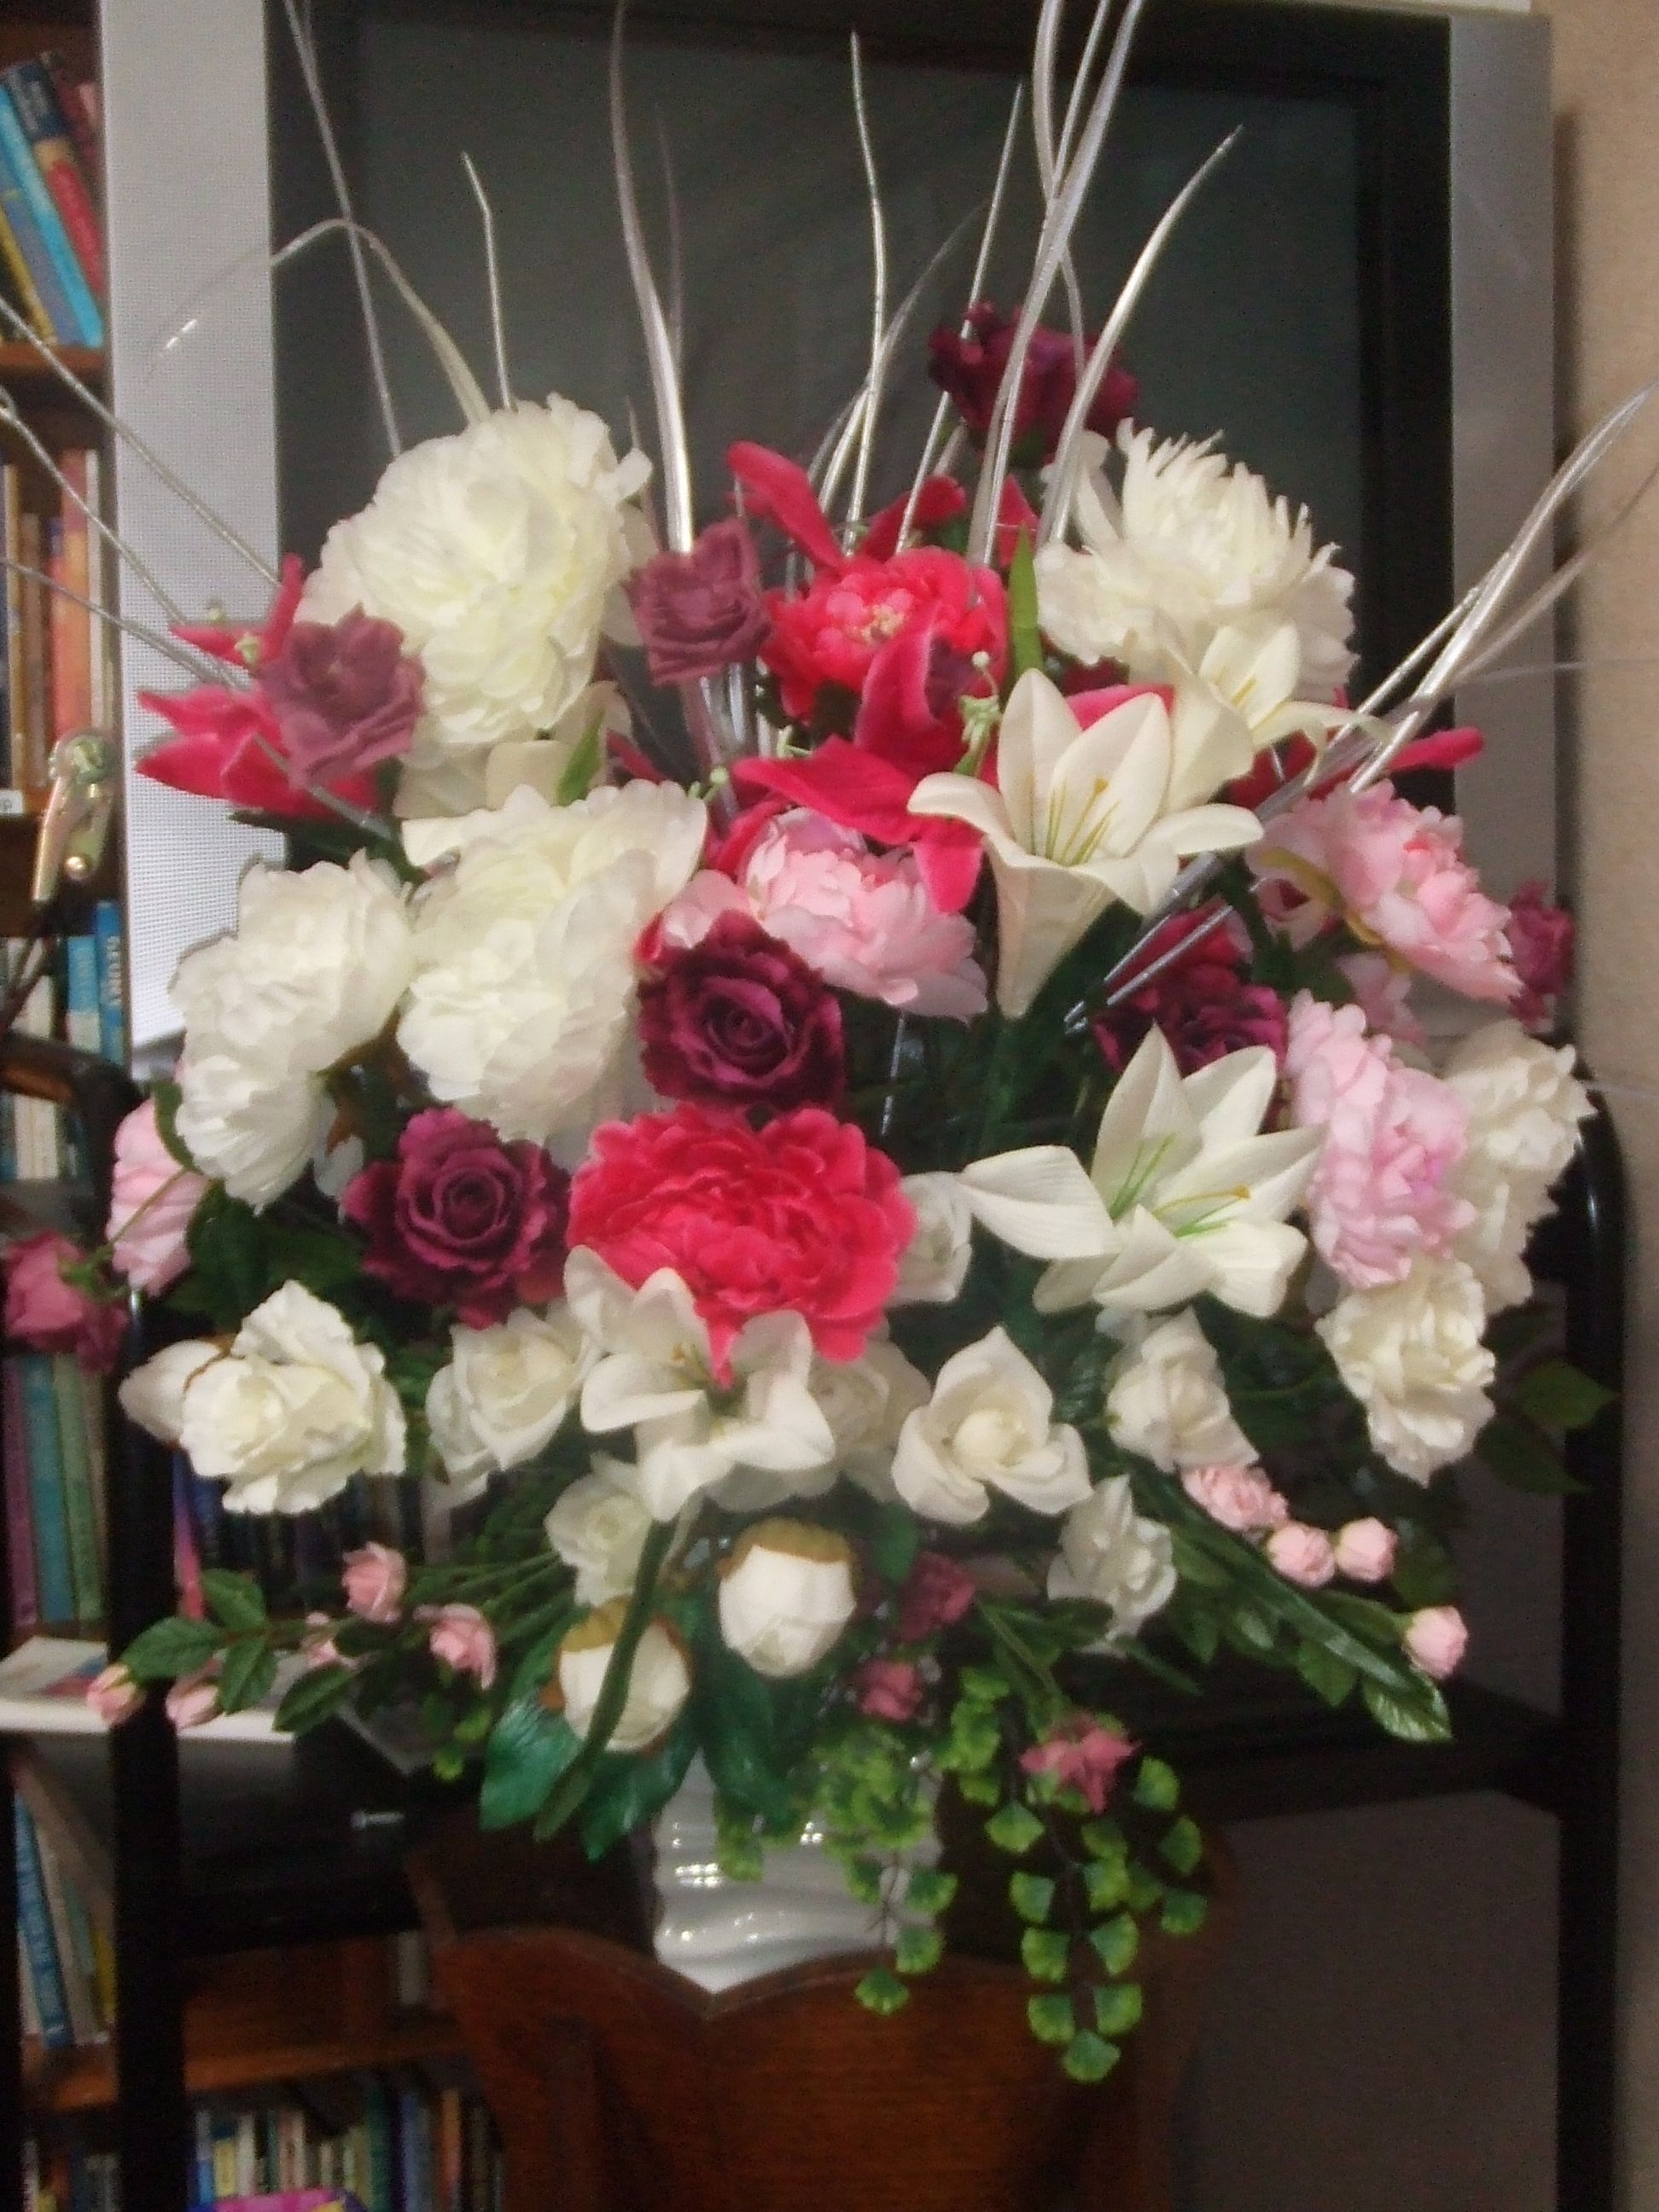 A fresh flower arrangement done for the reception hall